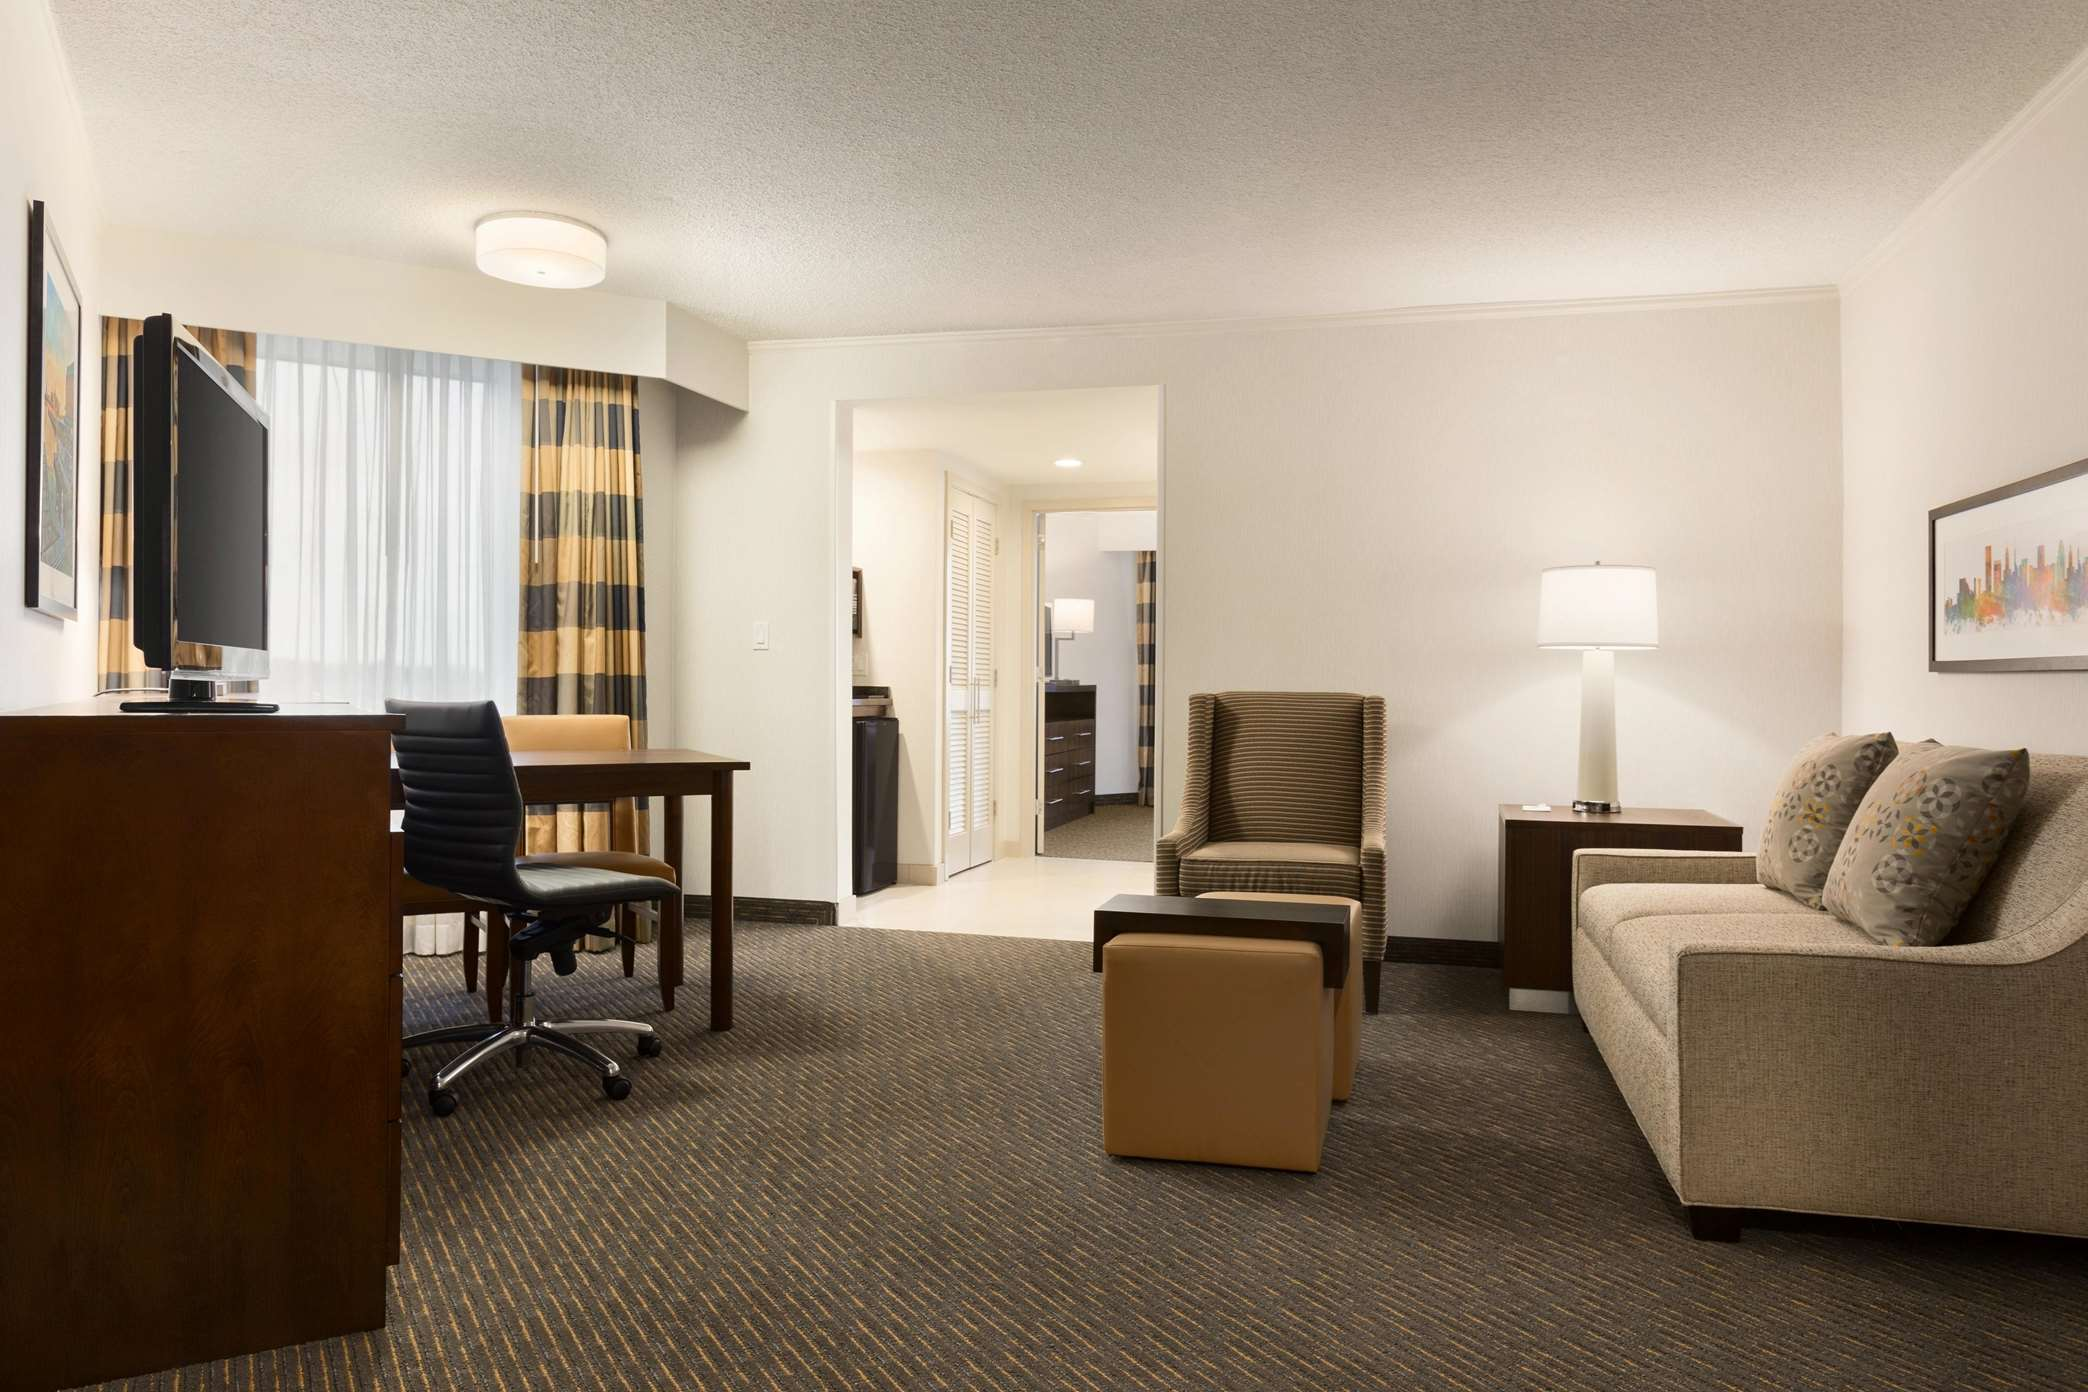 Embassy Suites by Hilton Baltimore at BWI Airport image 18